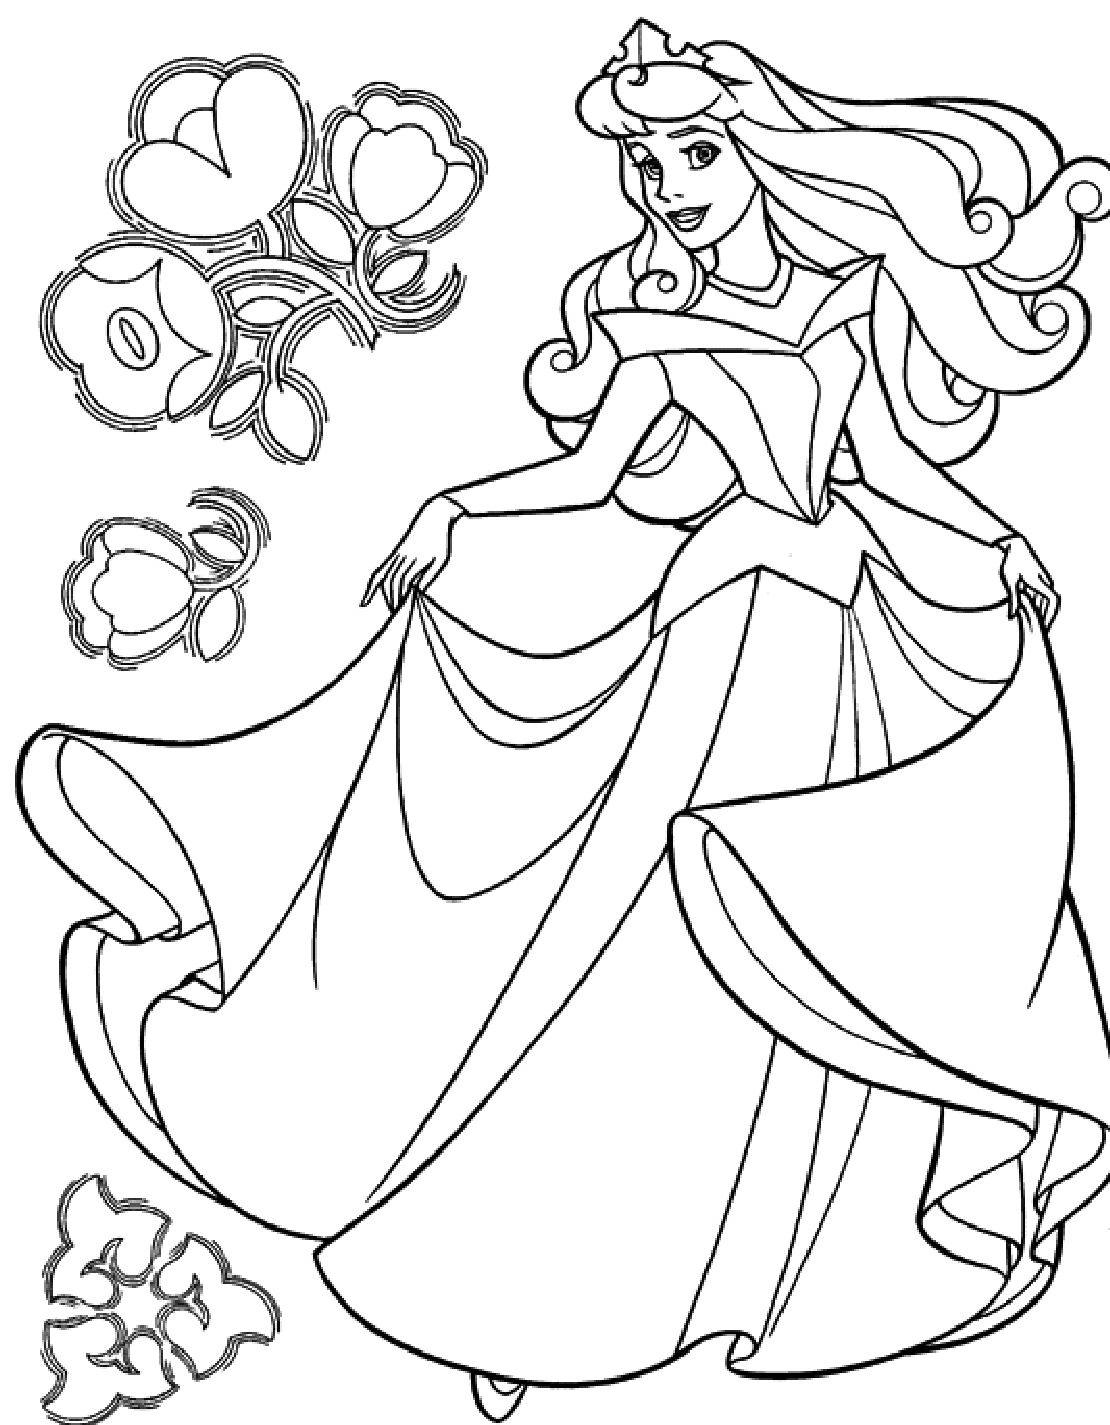 Cindirella Coloring Pages Printable Cindirella Coloring Pages Free Download Of 13 Kid Coloring Pages Line Gallery